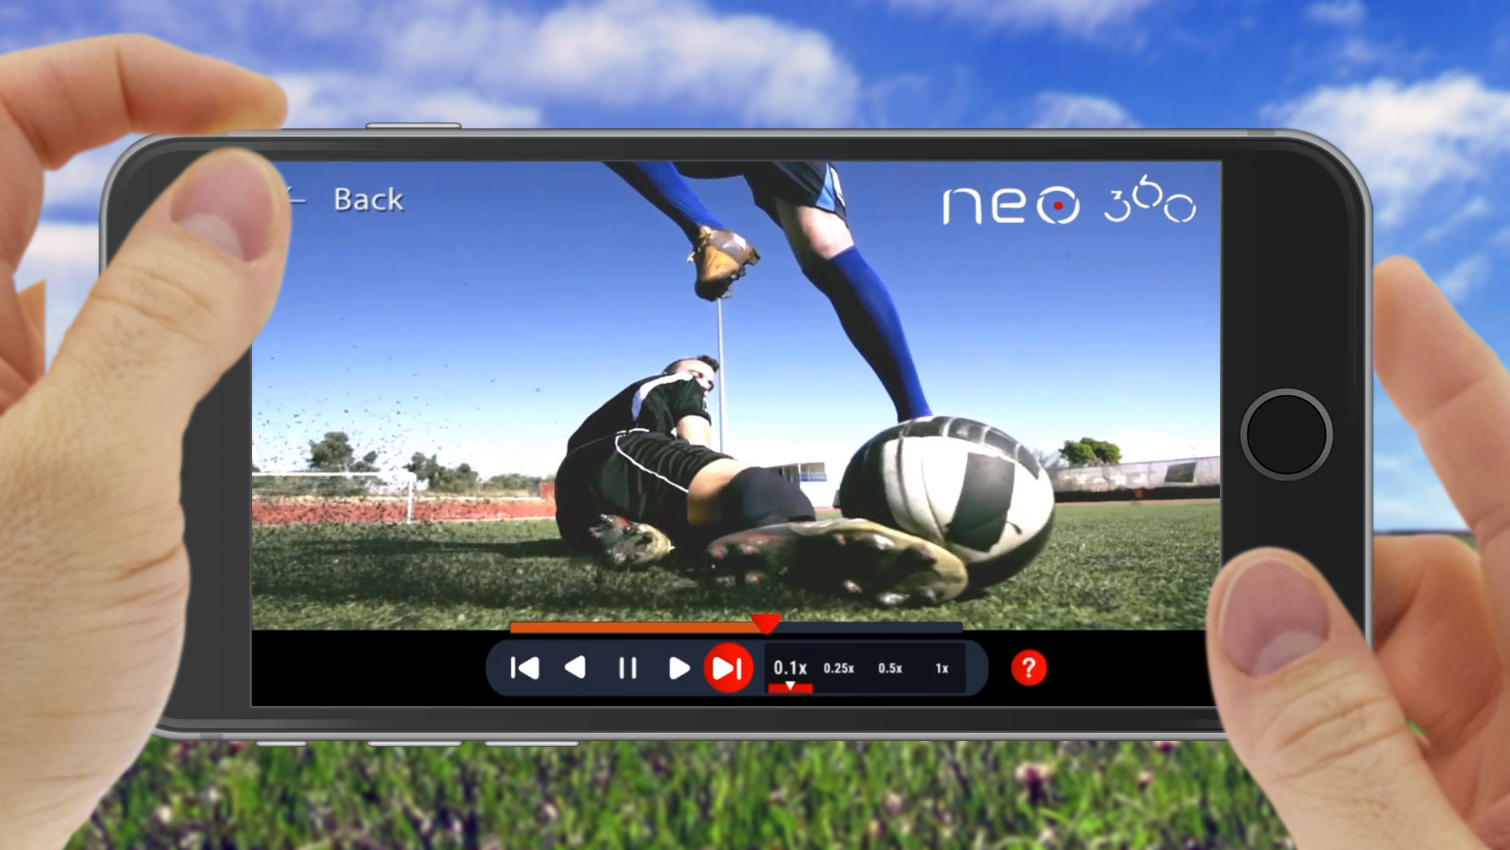 NEO360 – HD & 360 Slow Motion